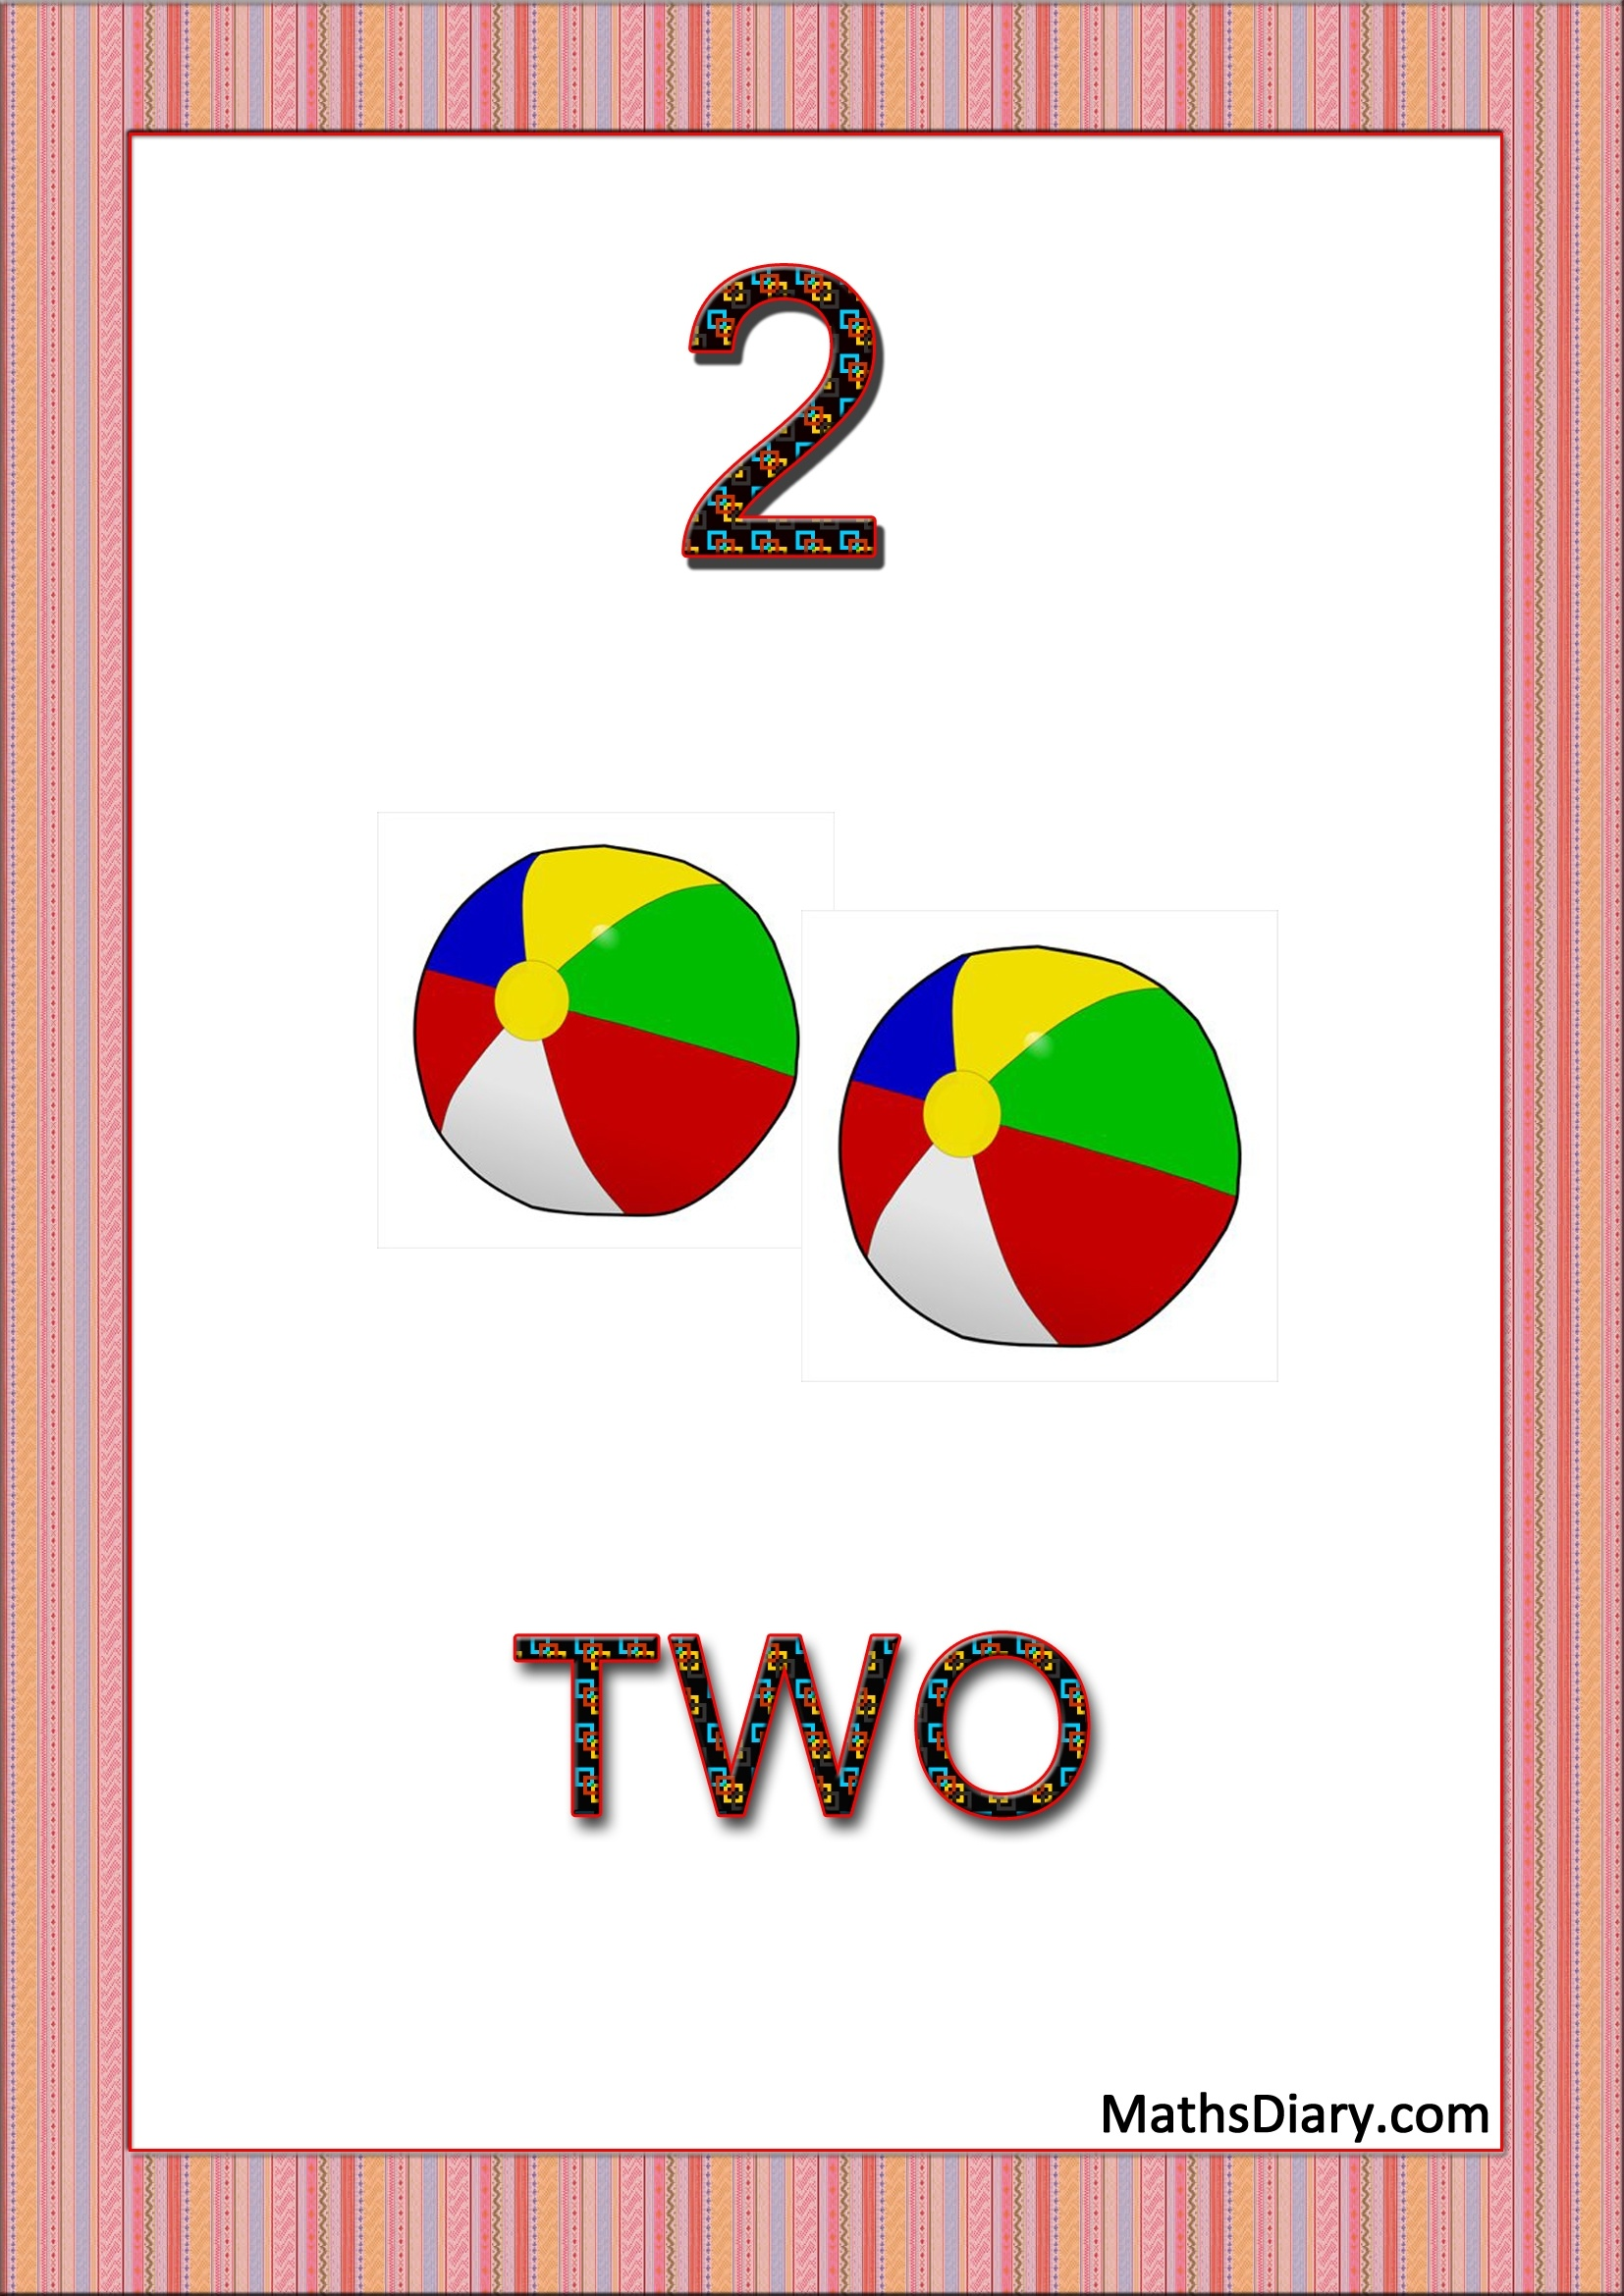 Learning Counting And Recognition Of Number 2 Worksheets Level 1 Help Sheets Part 1